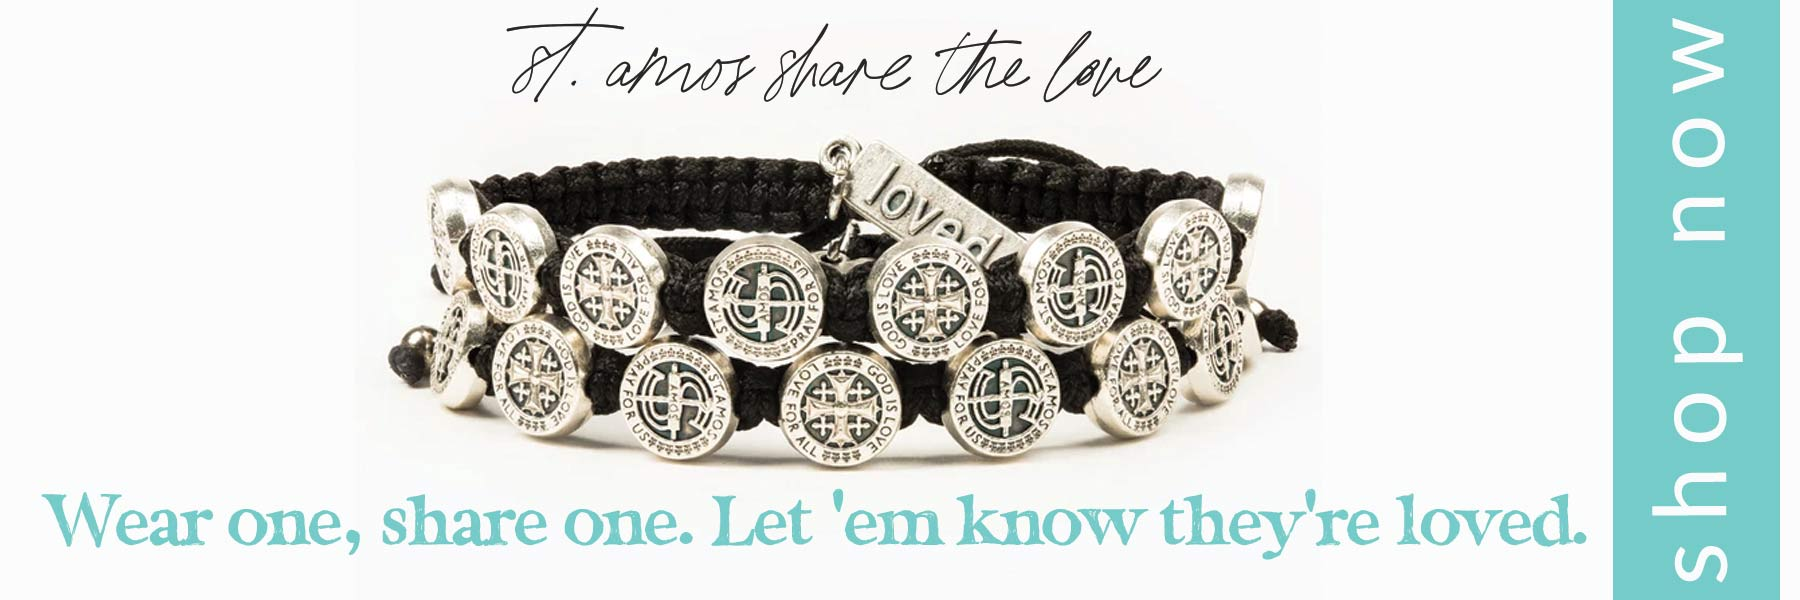 StAmos Share the Love Handwoven Blessing Bracelets that Give Back to Childhelp